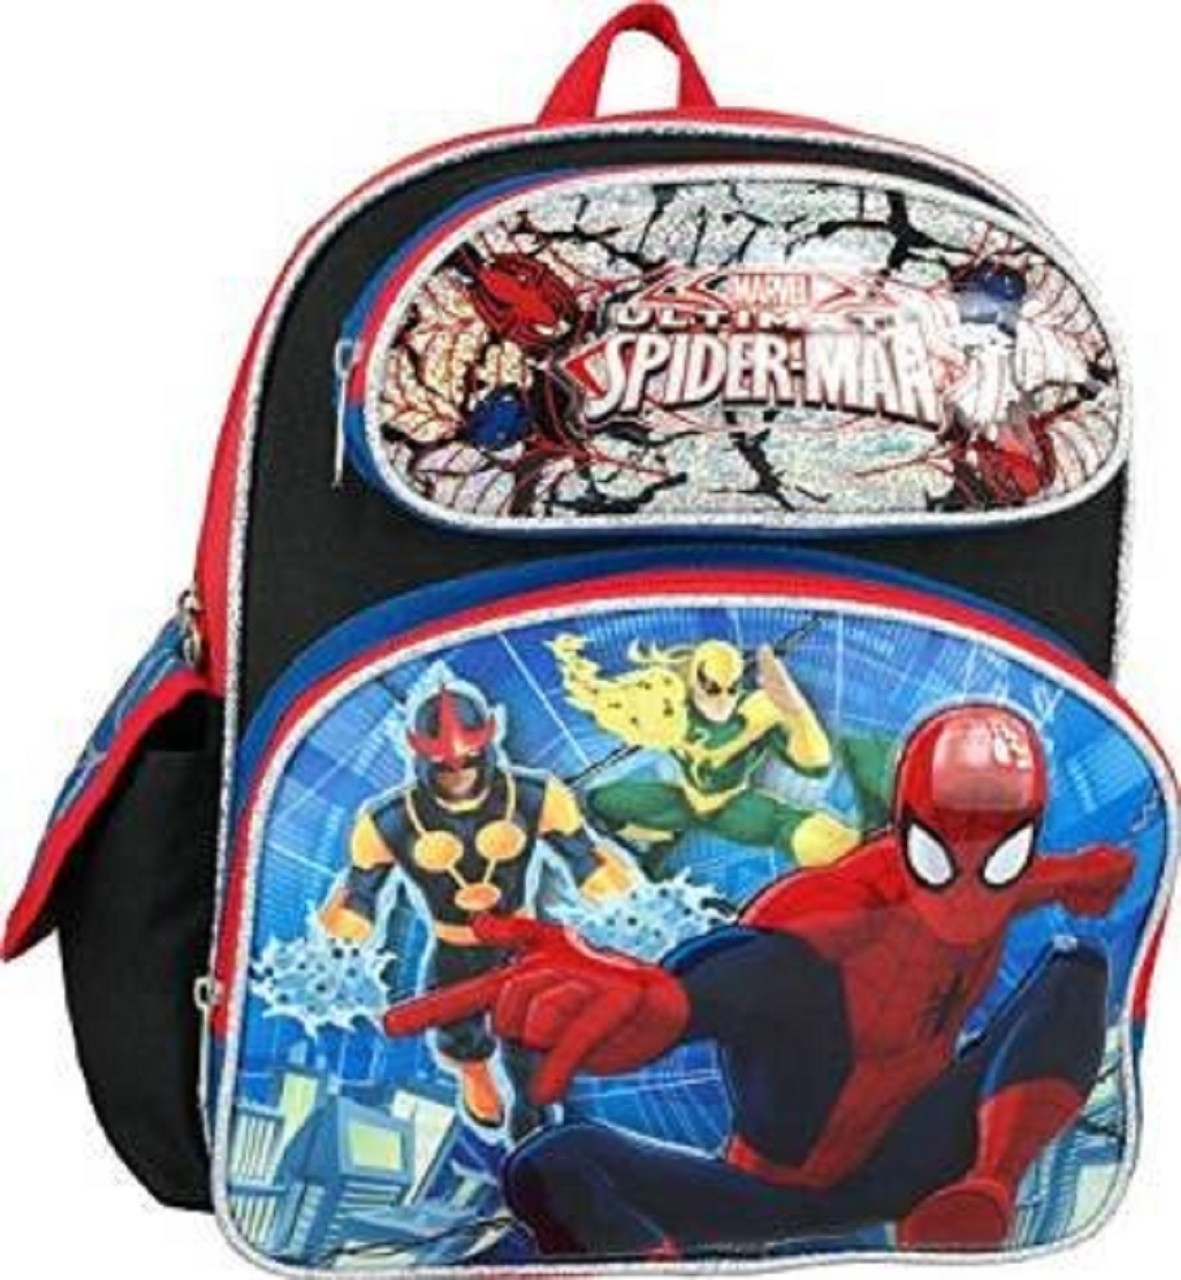 Backpack - Spiderman - Small 12 Inch - Ironfist Pictured